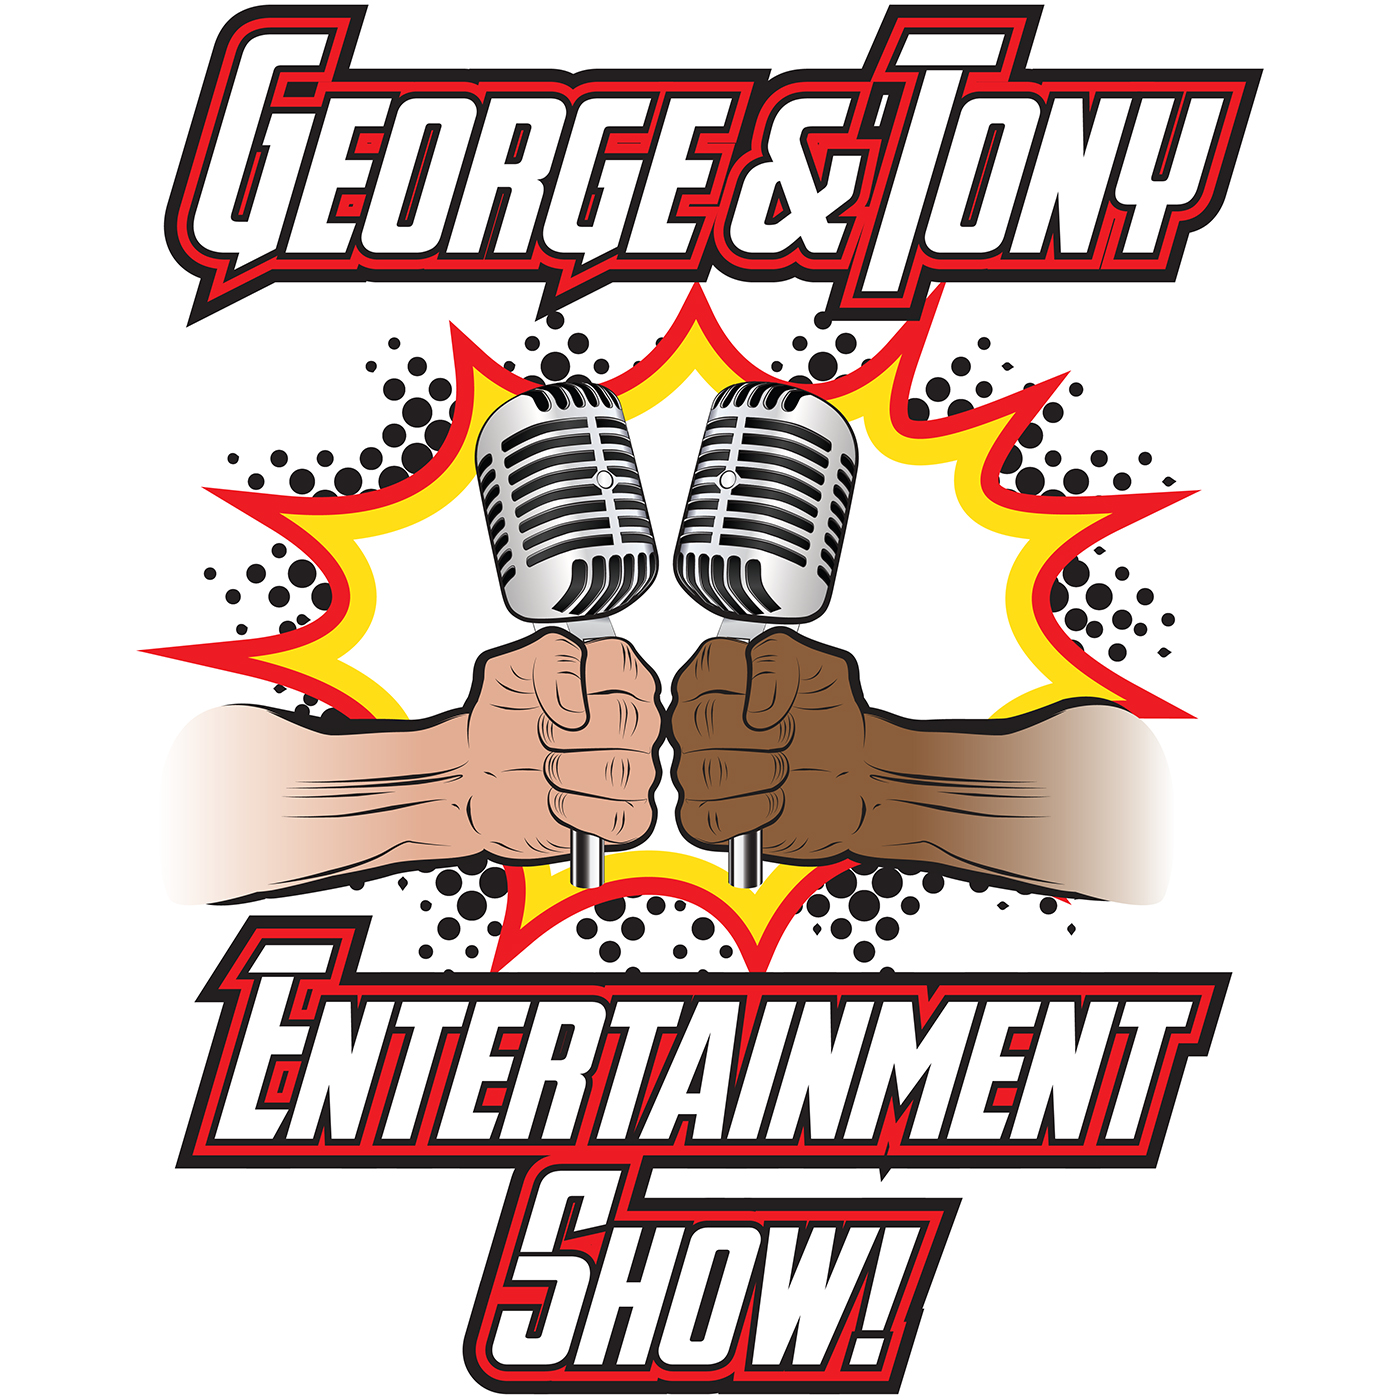 George and Tony Entertainment Show #90